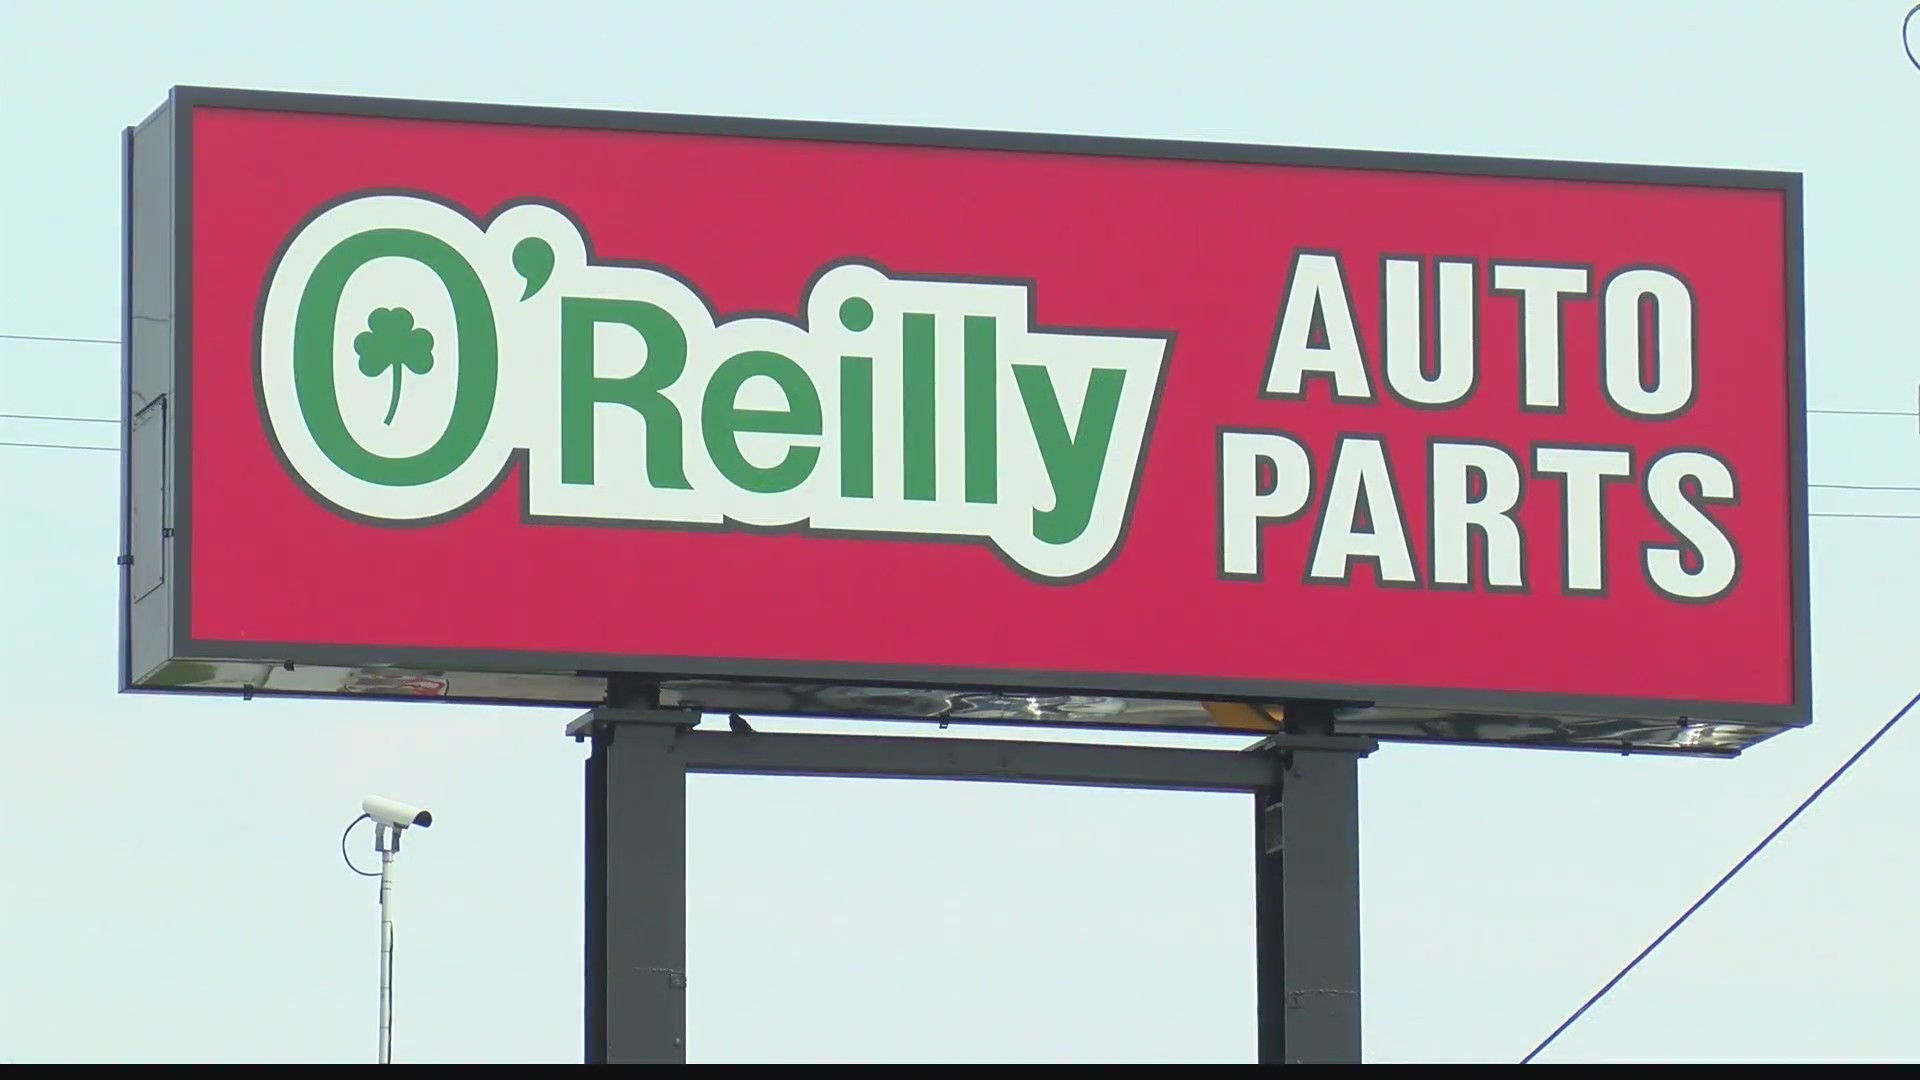 O_Reilly_Auto_Parts_opens_in_Altoona_0_20190411211632